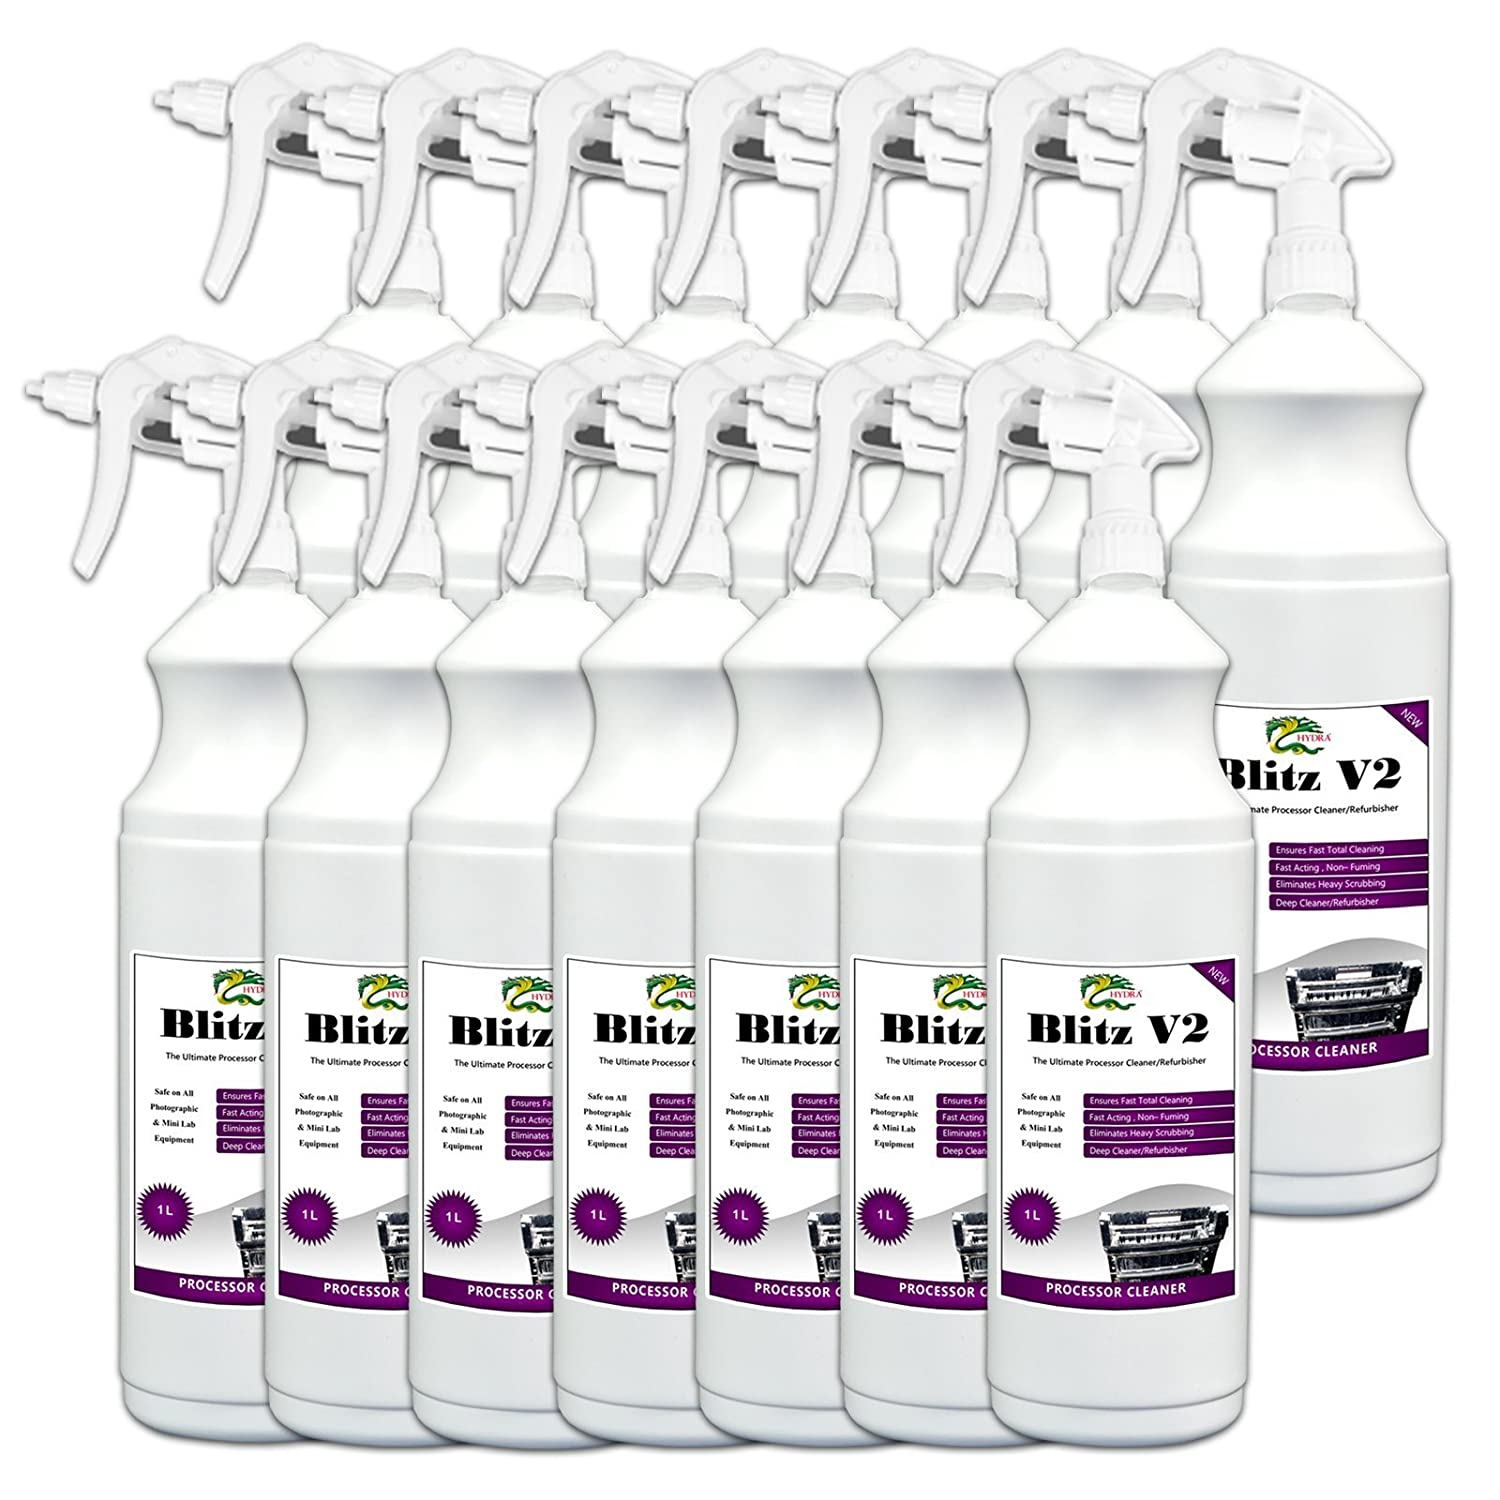 Deep Cleaner and Descaler Hydra Blitz v2 – 14 x 1l Foamingスポットクリーナーfor Badly Scaledラック、従来Film、プレートとペーパープロセッサ   B01G72GCH4